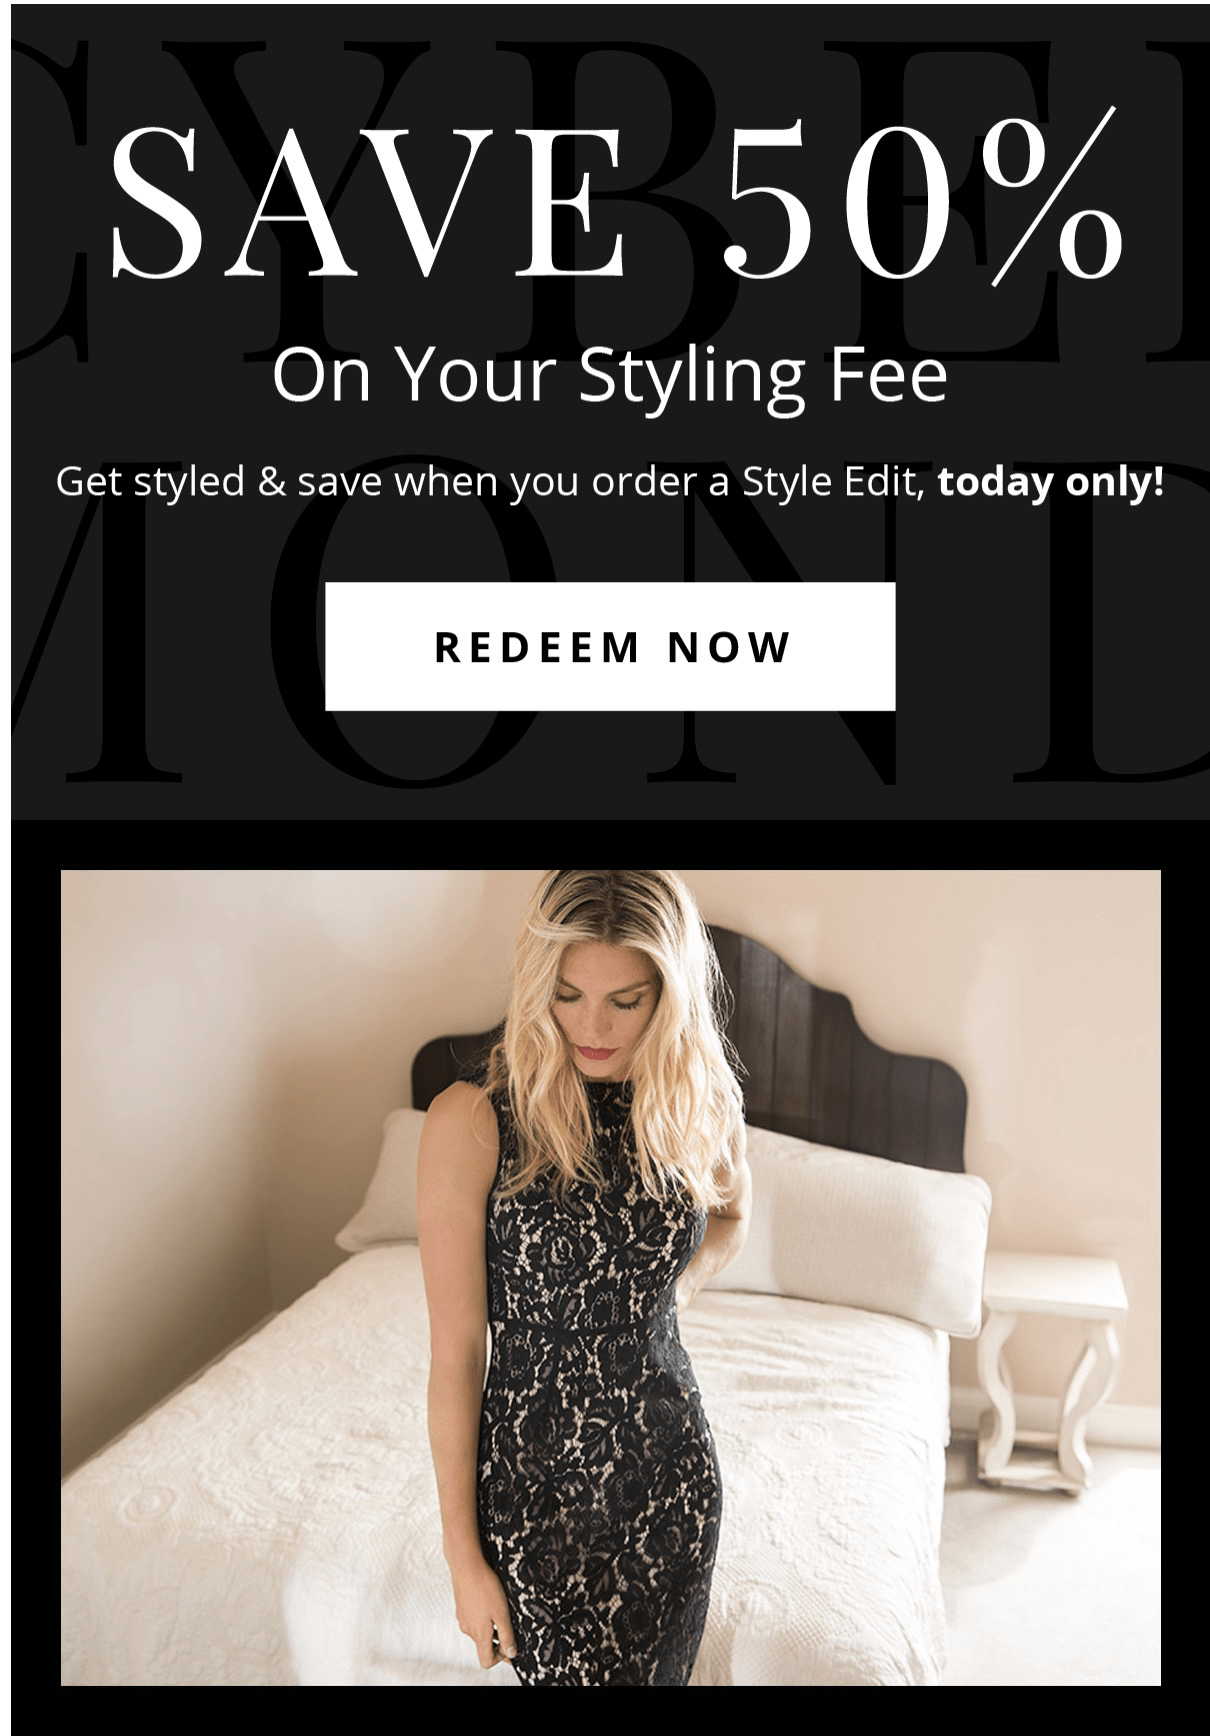 EXTENDED: Wantable Style Edit Styling Fee HALF OFF for Cyber Monday!